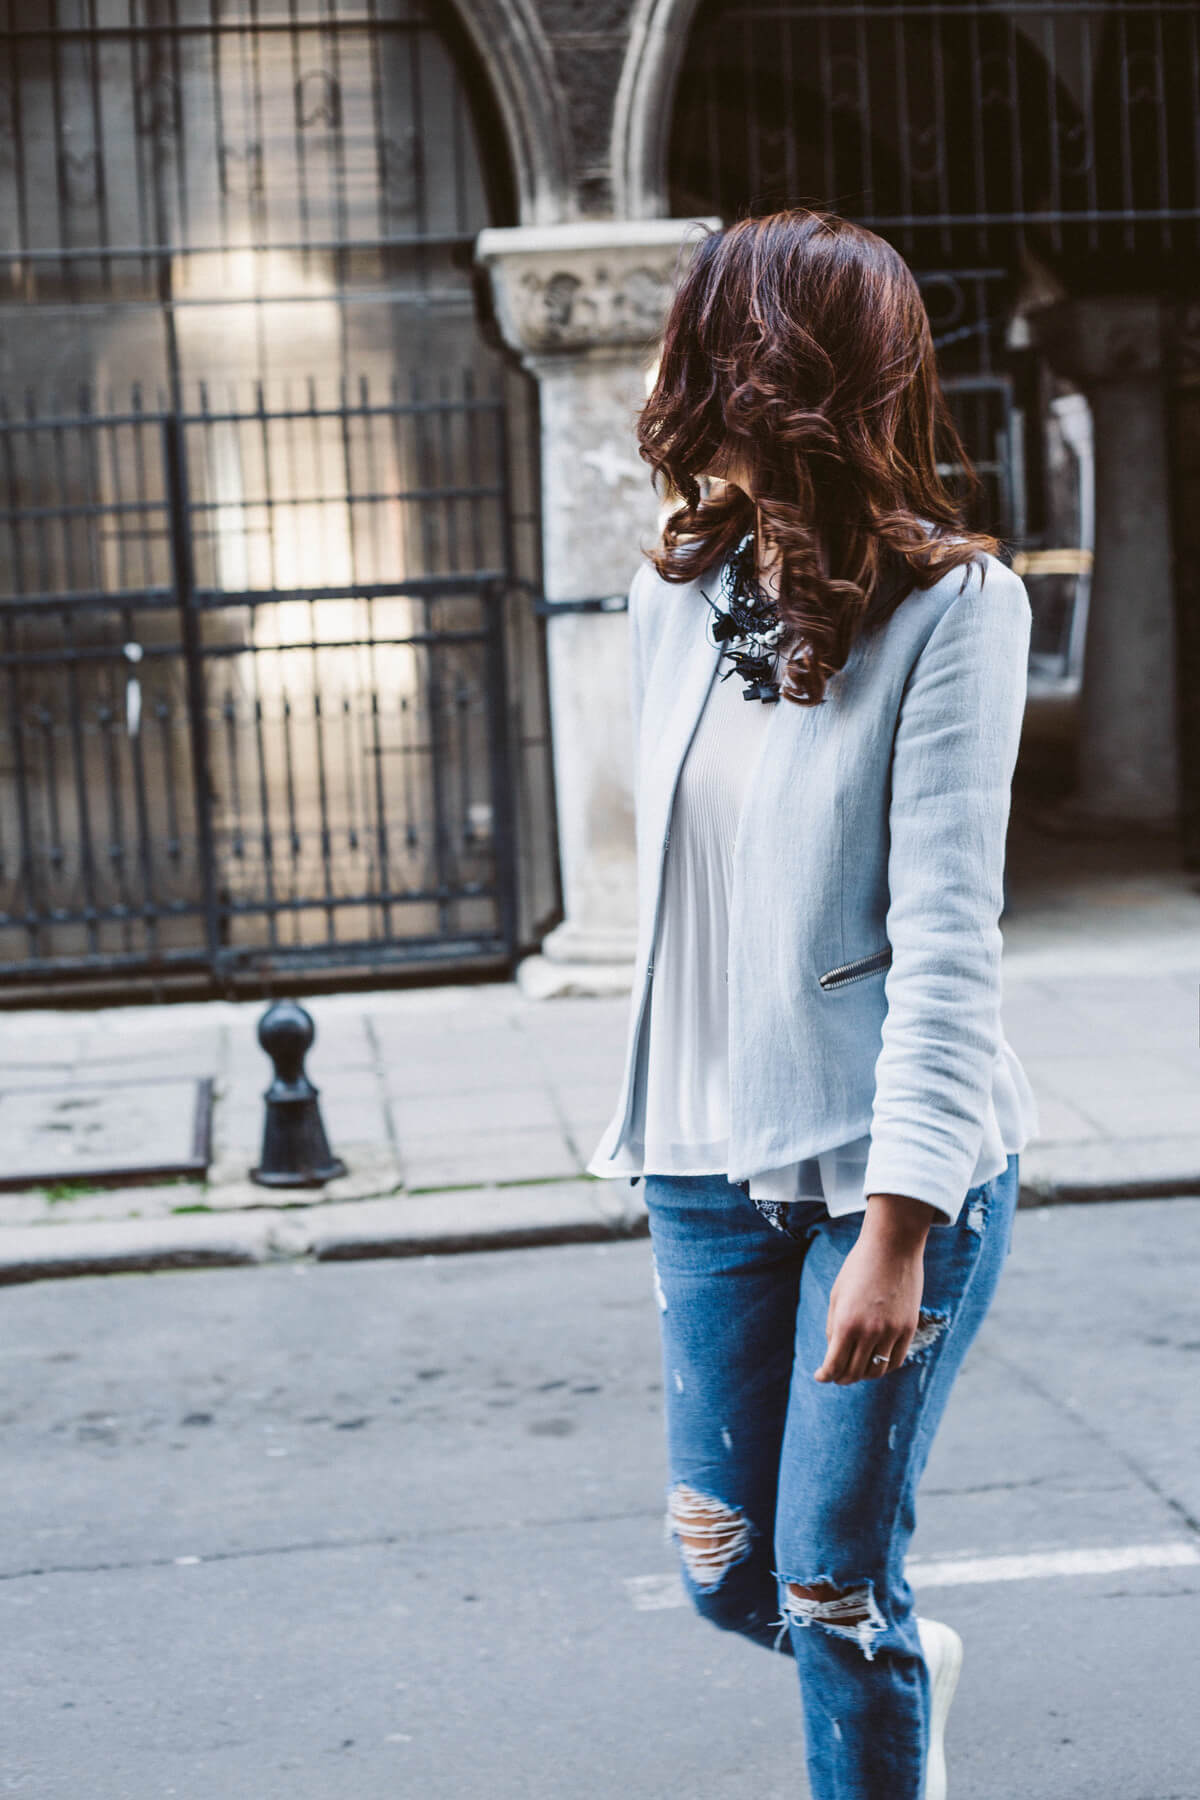 Blue outfit, jeans and jacket